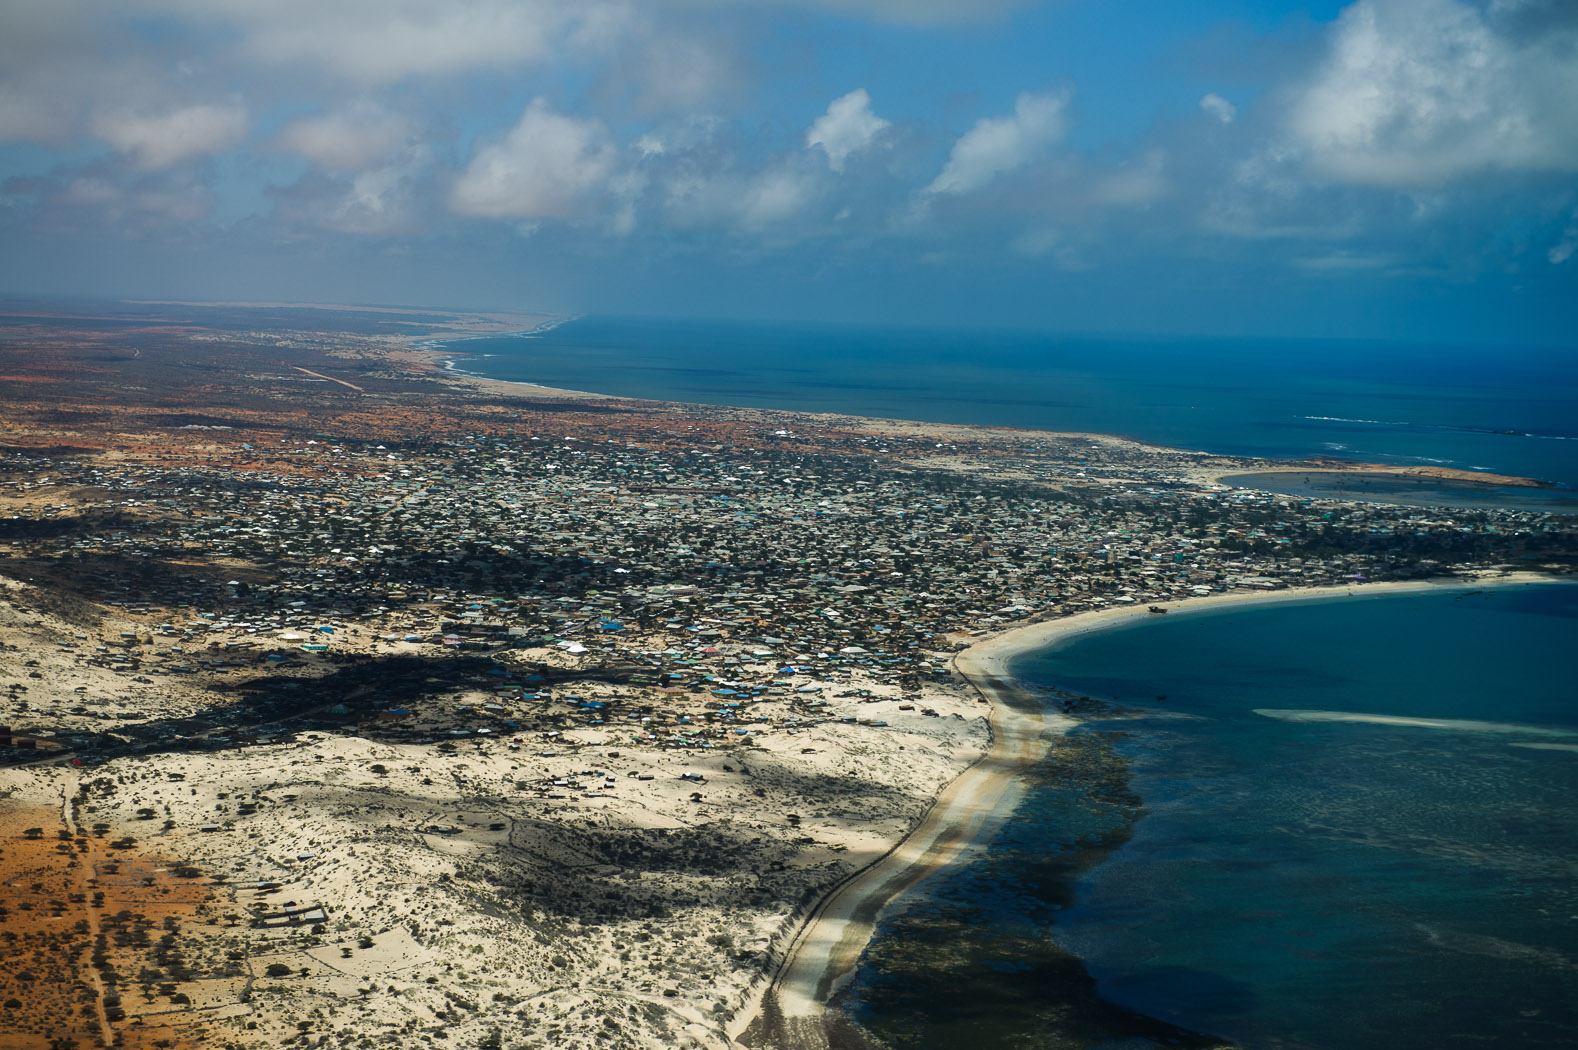 Five hundred kilometres further down the Indian Ocean coast, the important trading city of Kismayo has also been liberated from al-Shabaab following four years of rule under the Islamists. It is the site of a major Somali shipping port, and a vital source of revenue for whoever controls the city.